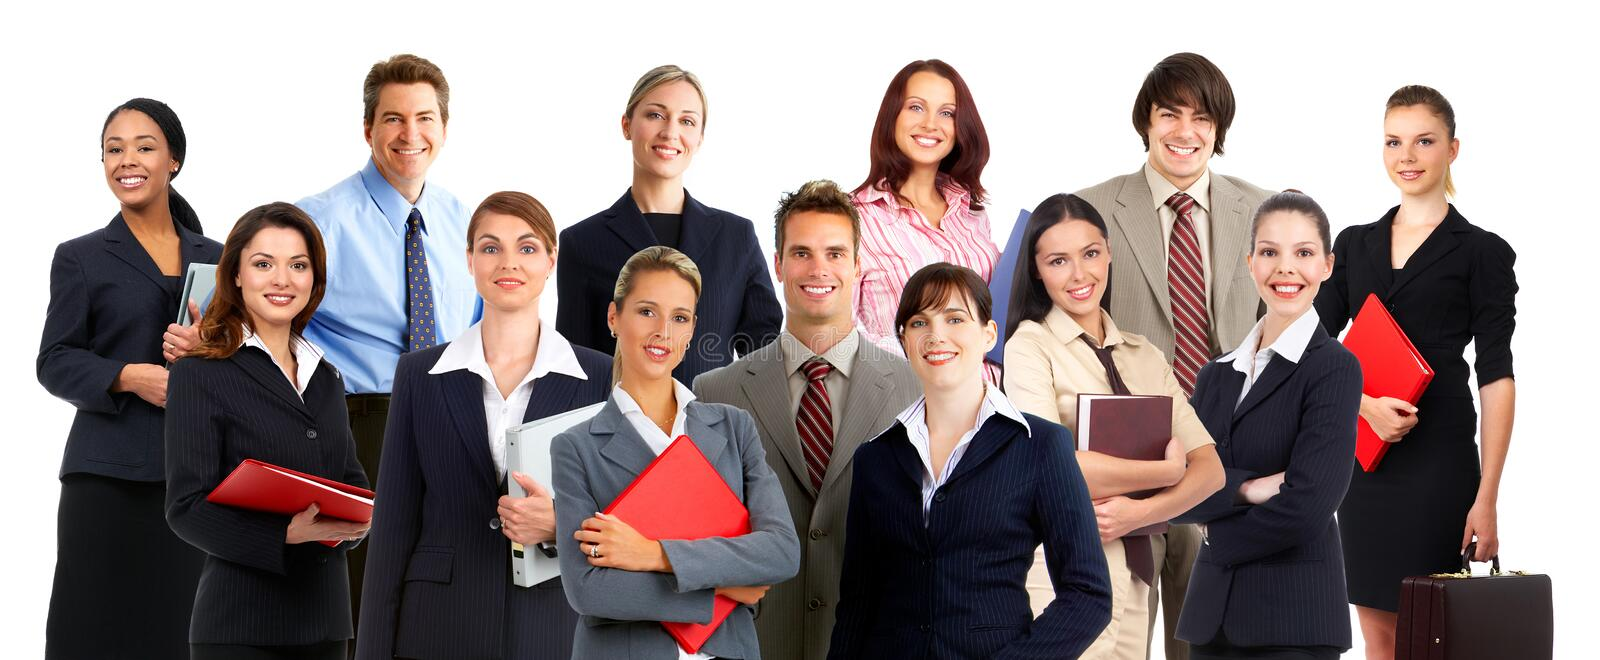 Download Business people stock image. Image of businessman, professional - 7515077